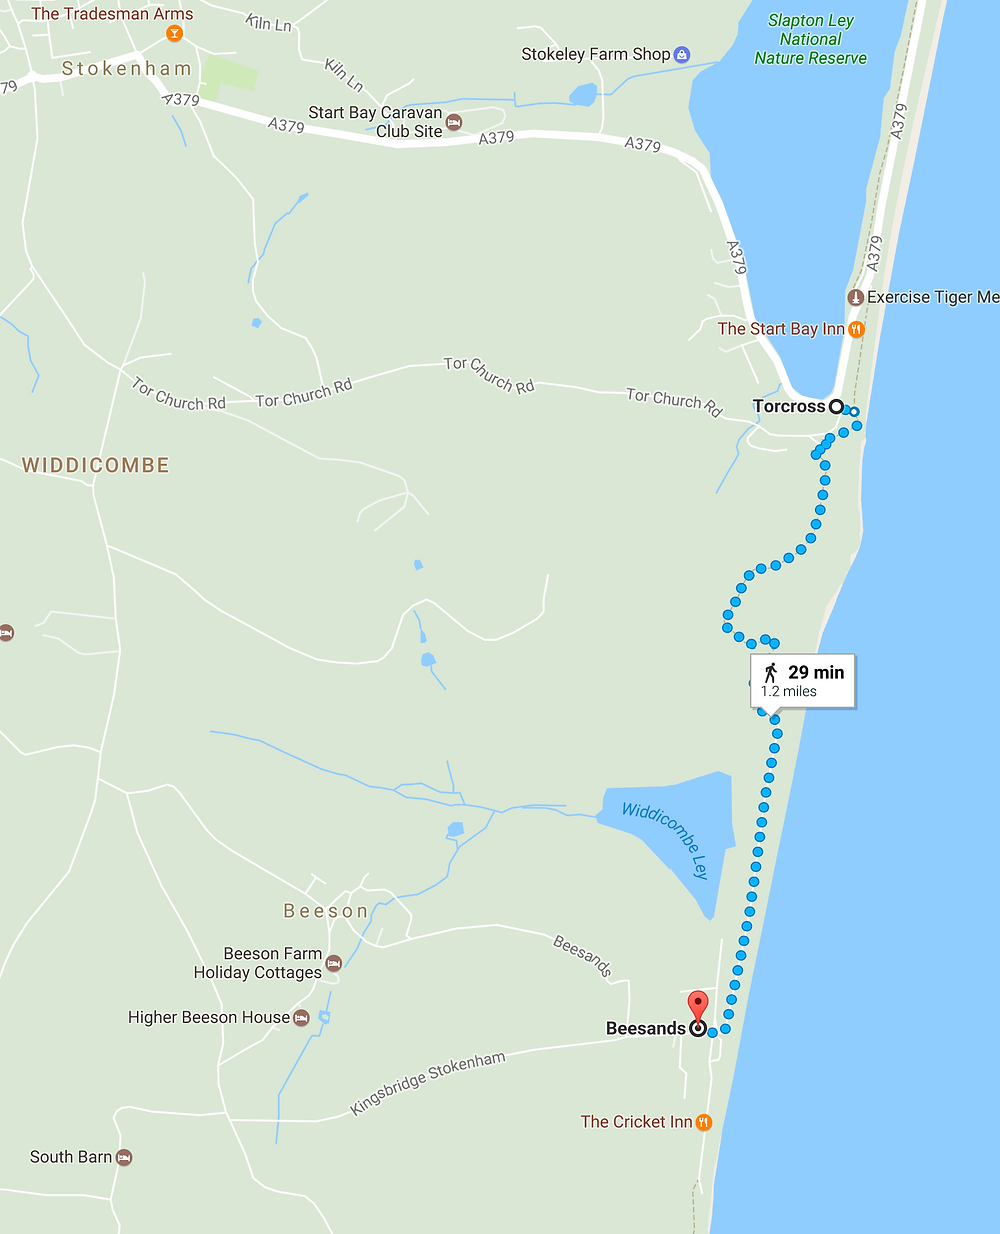 Torcross to Beesands